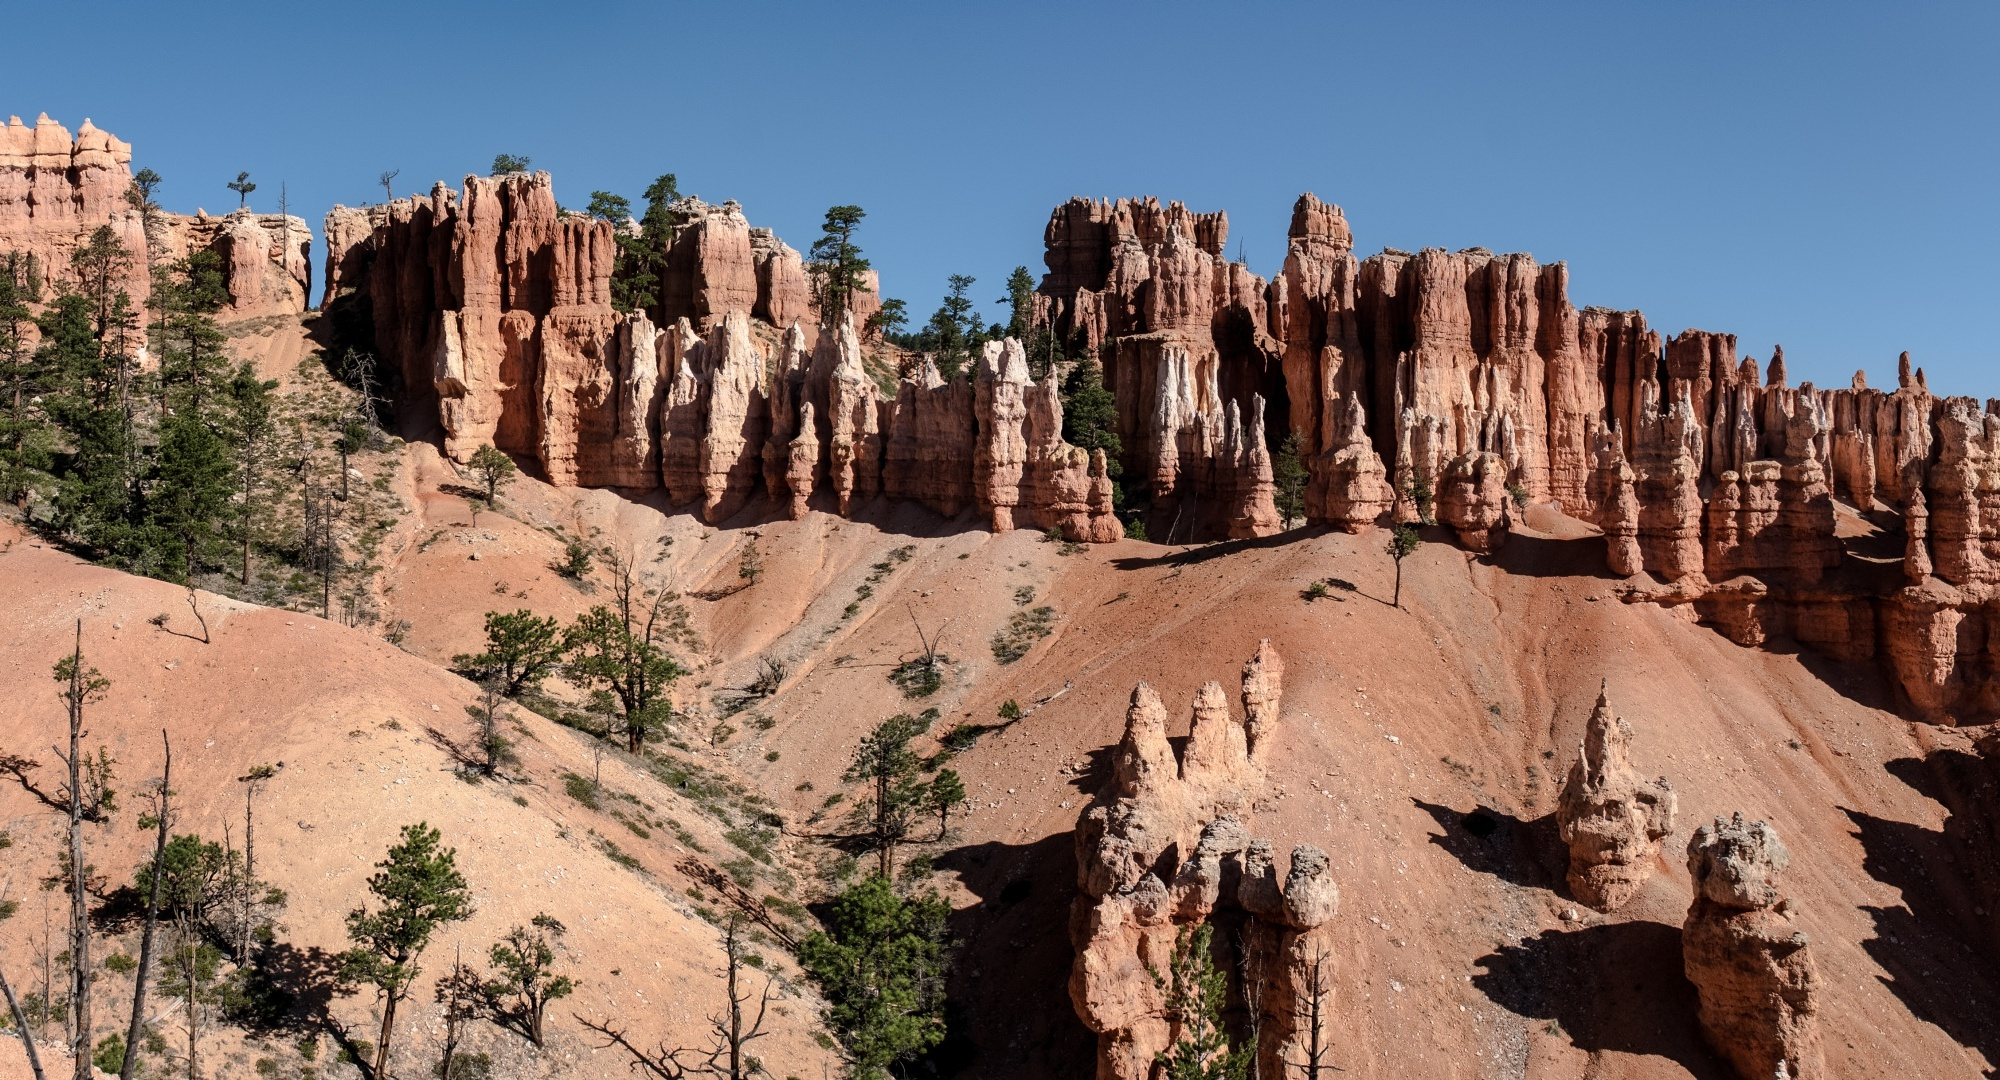 Bryce Canyon Panorama 03 - 6 Images